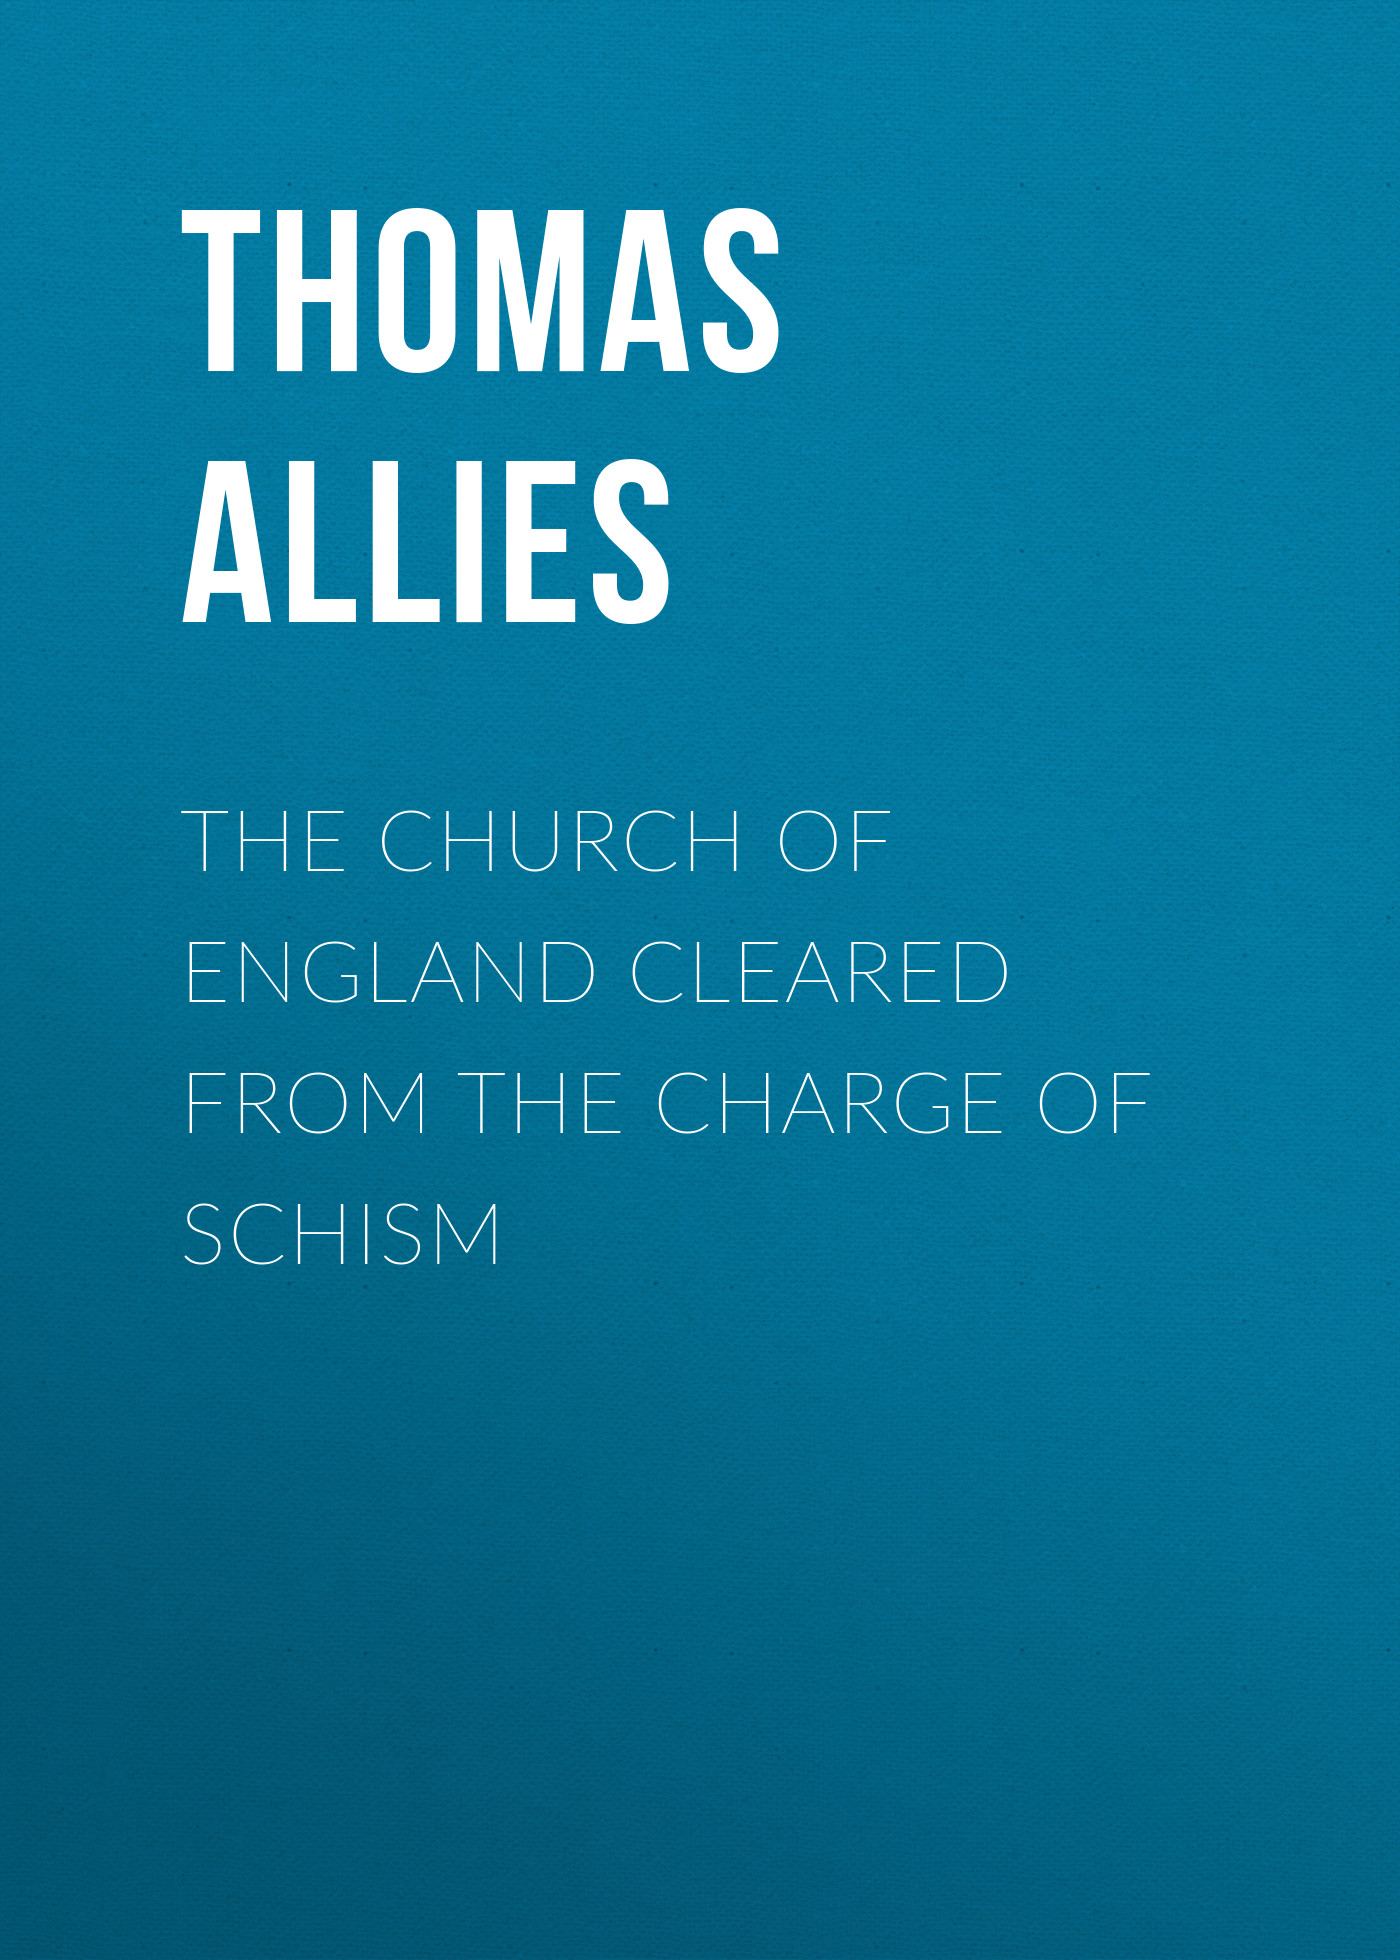 Allies Thomas William The Church of England cleared from the charge of Schism allies thomas william the church of england cleared from the charge of schism